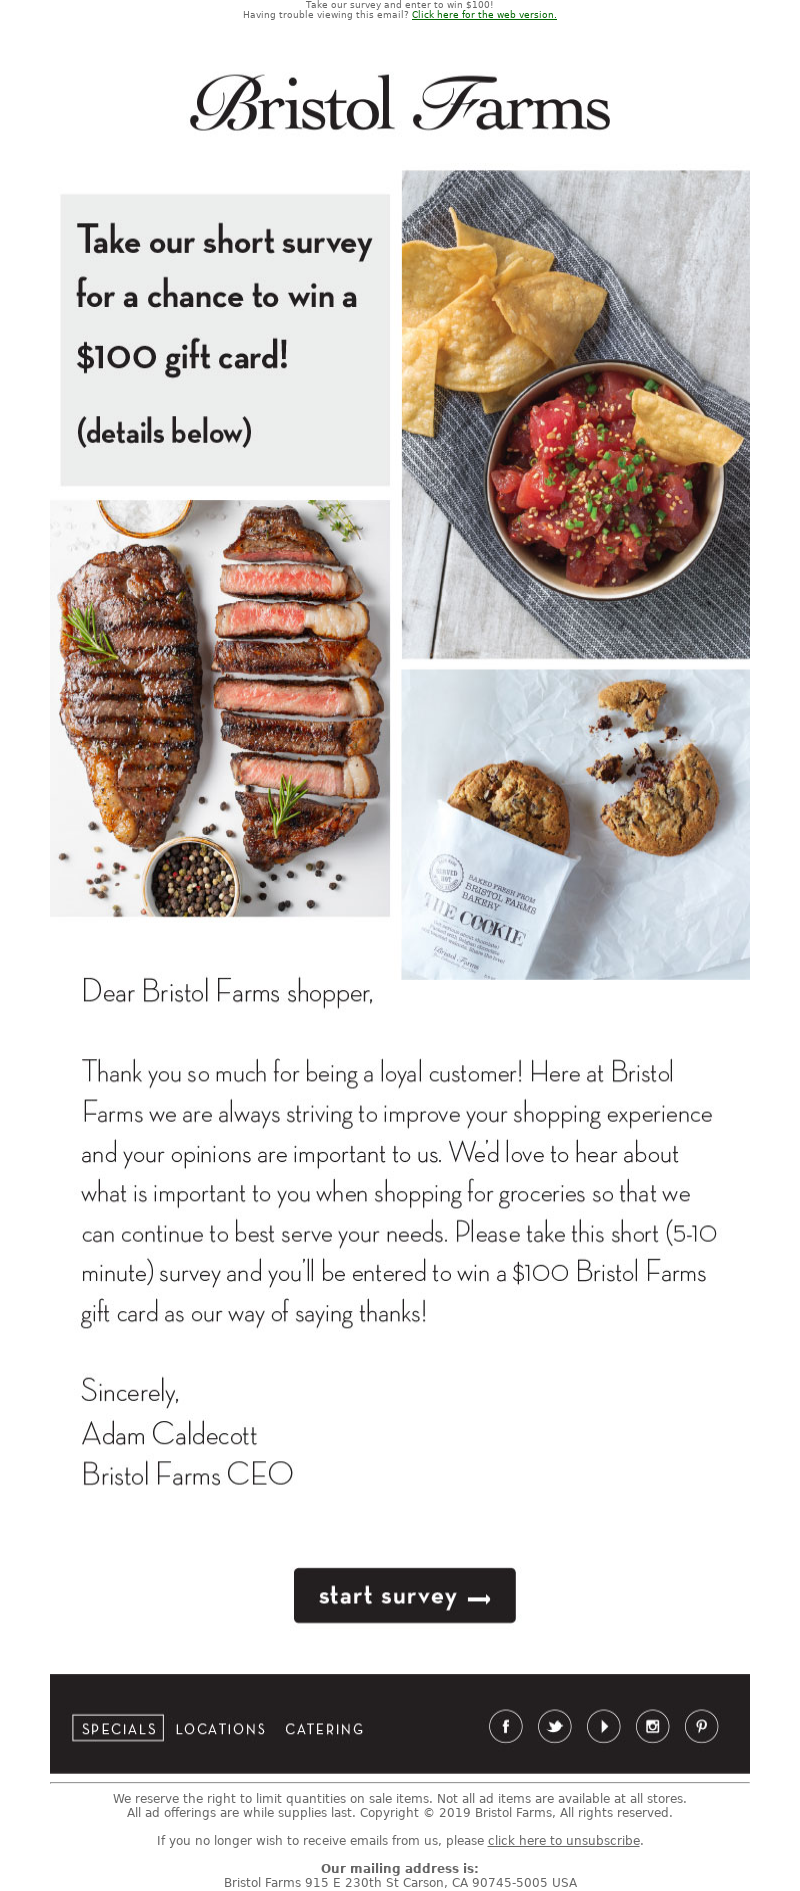 Bristol Farms - Take our short survey for a chance to win $100